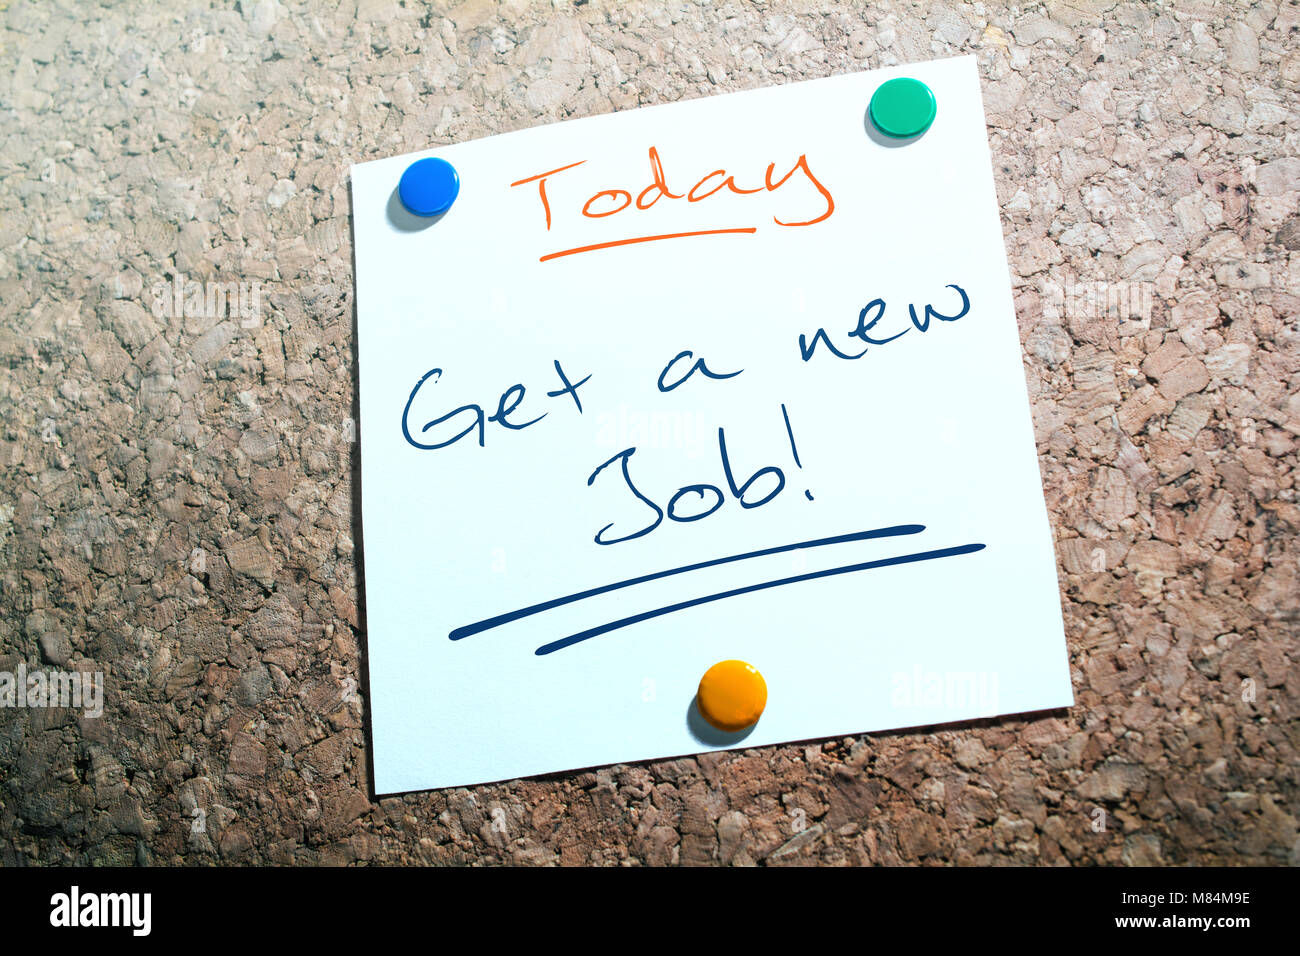 Get A New Job Reminder For Today On Paper Pinned On Cork Board - Stock Image